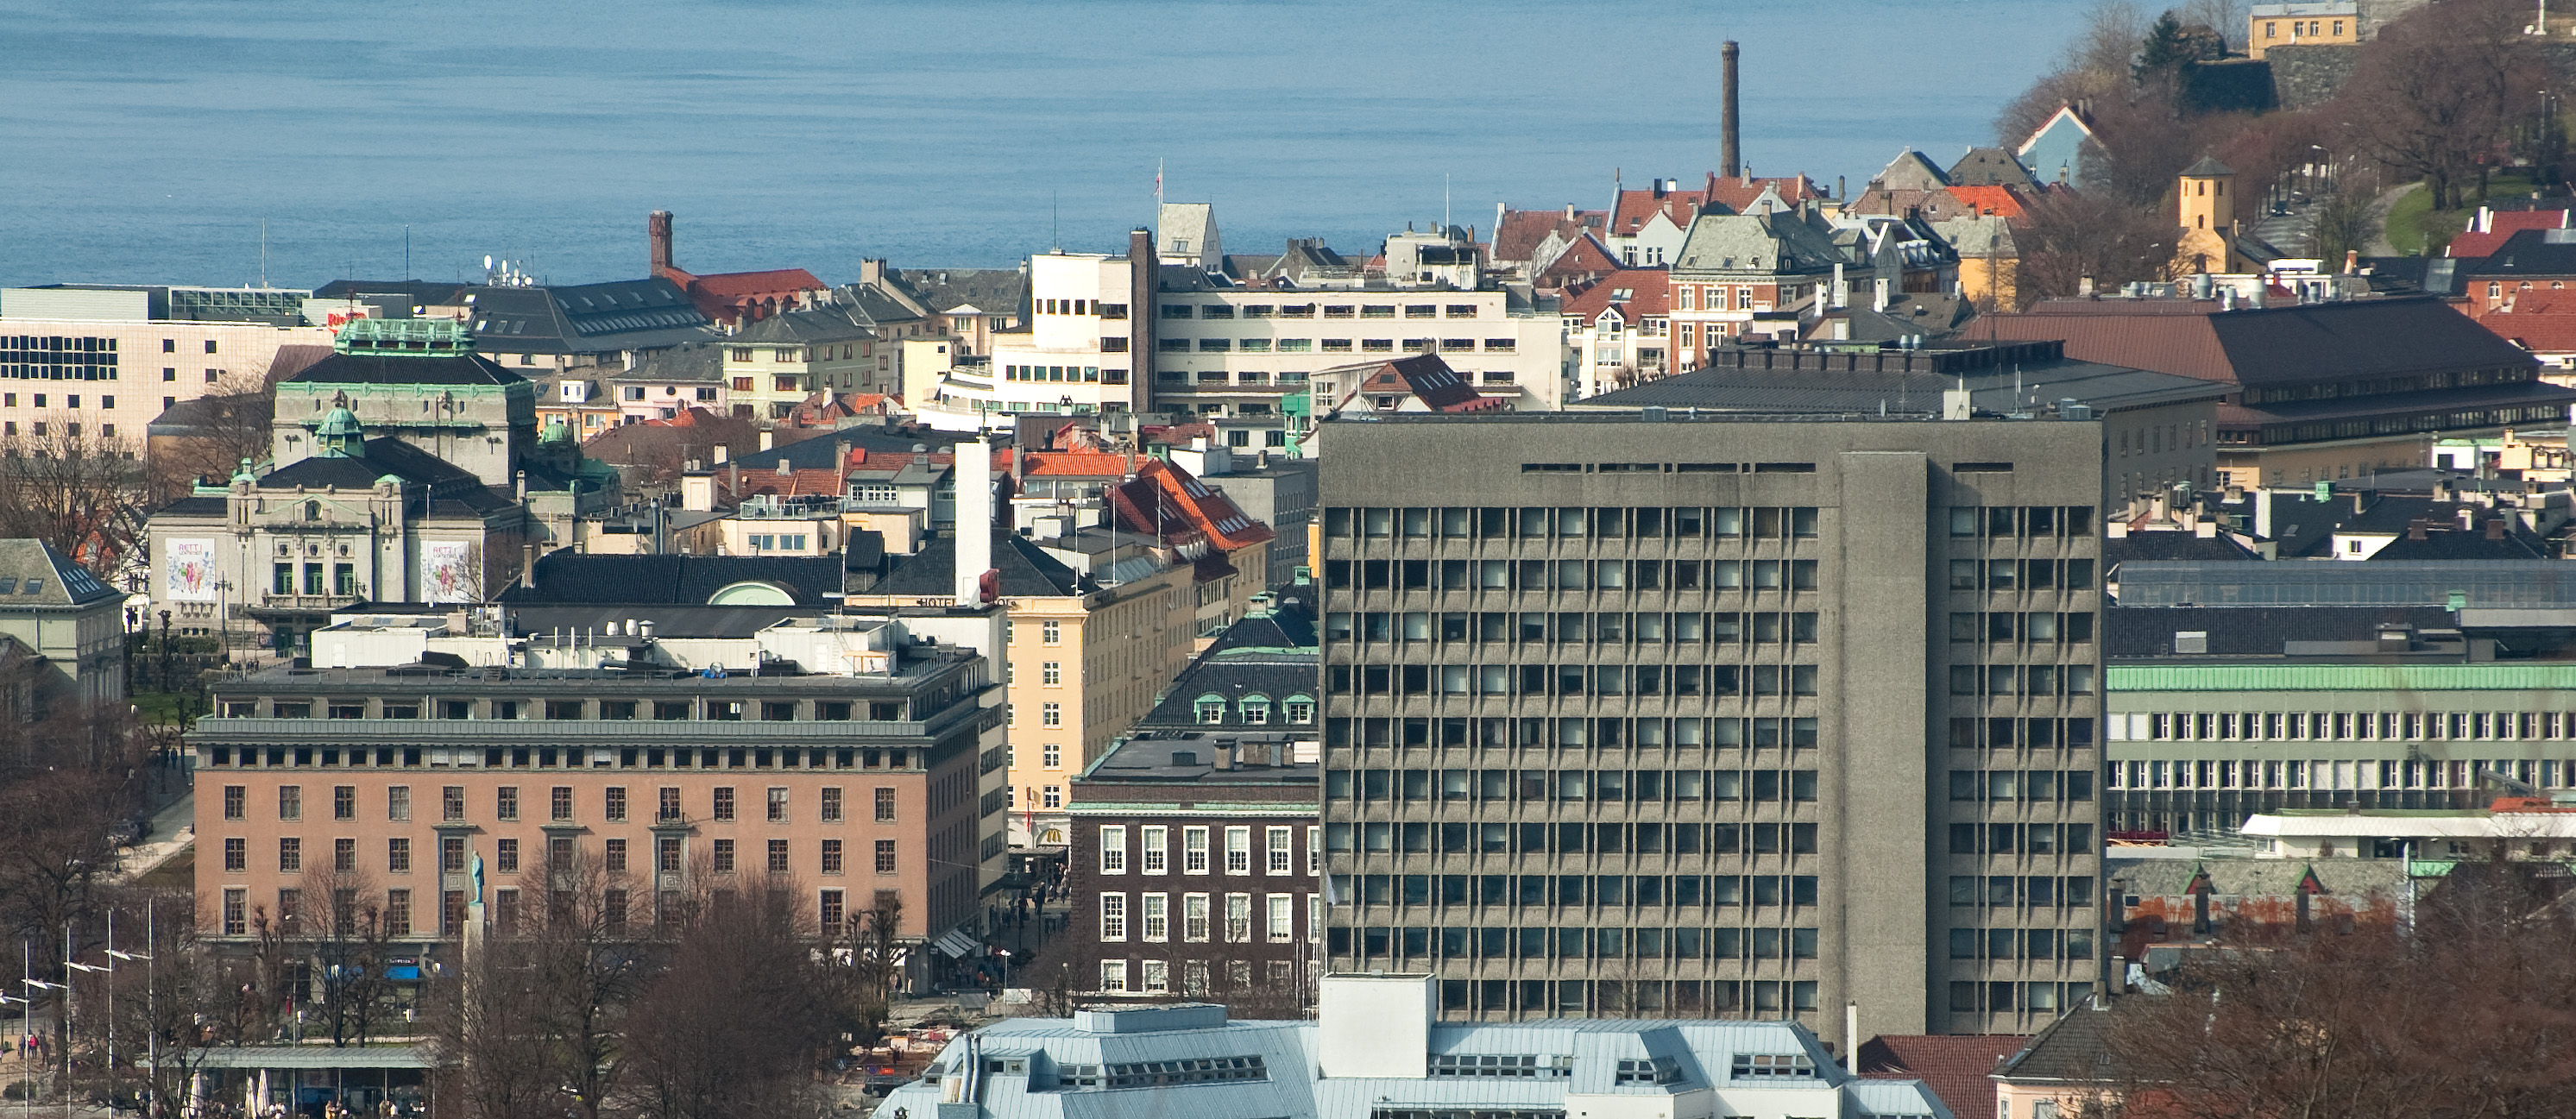 File:Bergen city centre April4 09.jpg - Wikimedia Commons